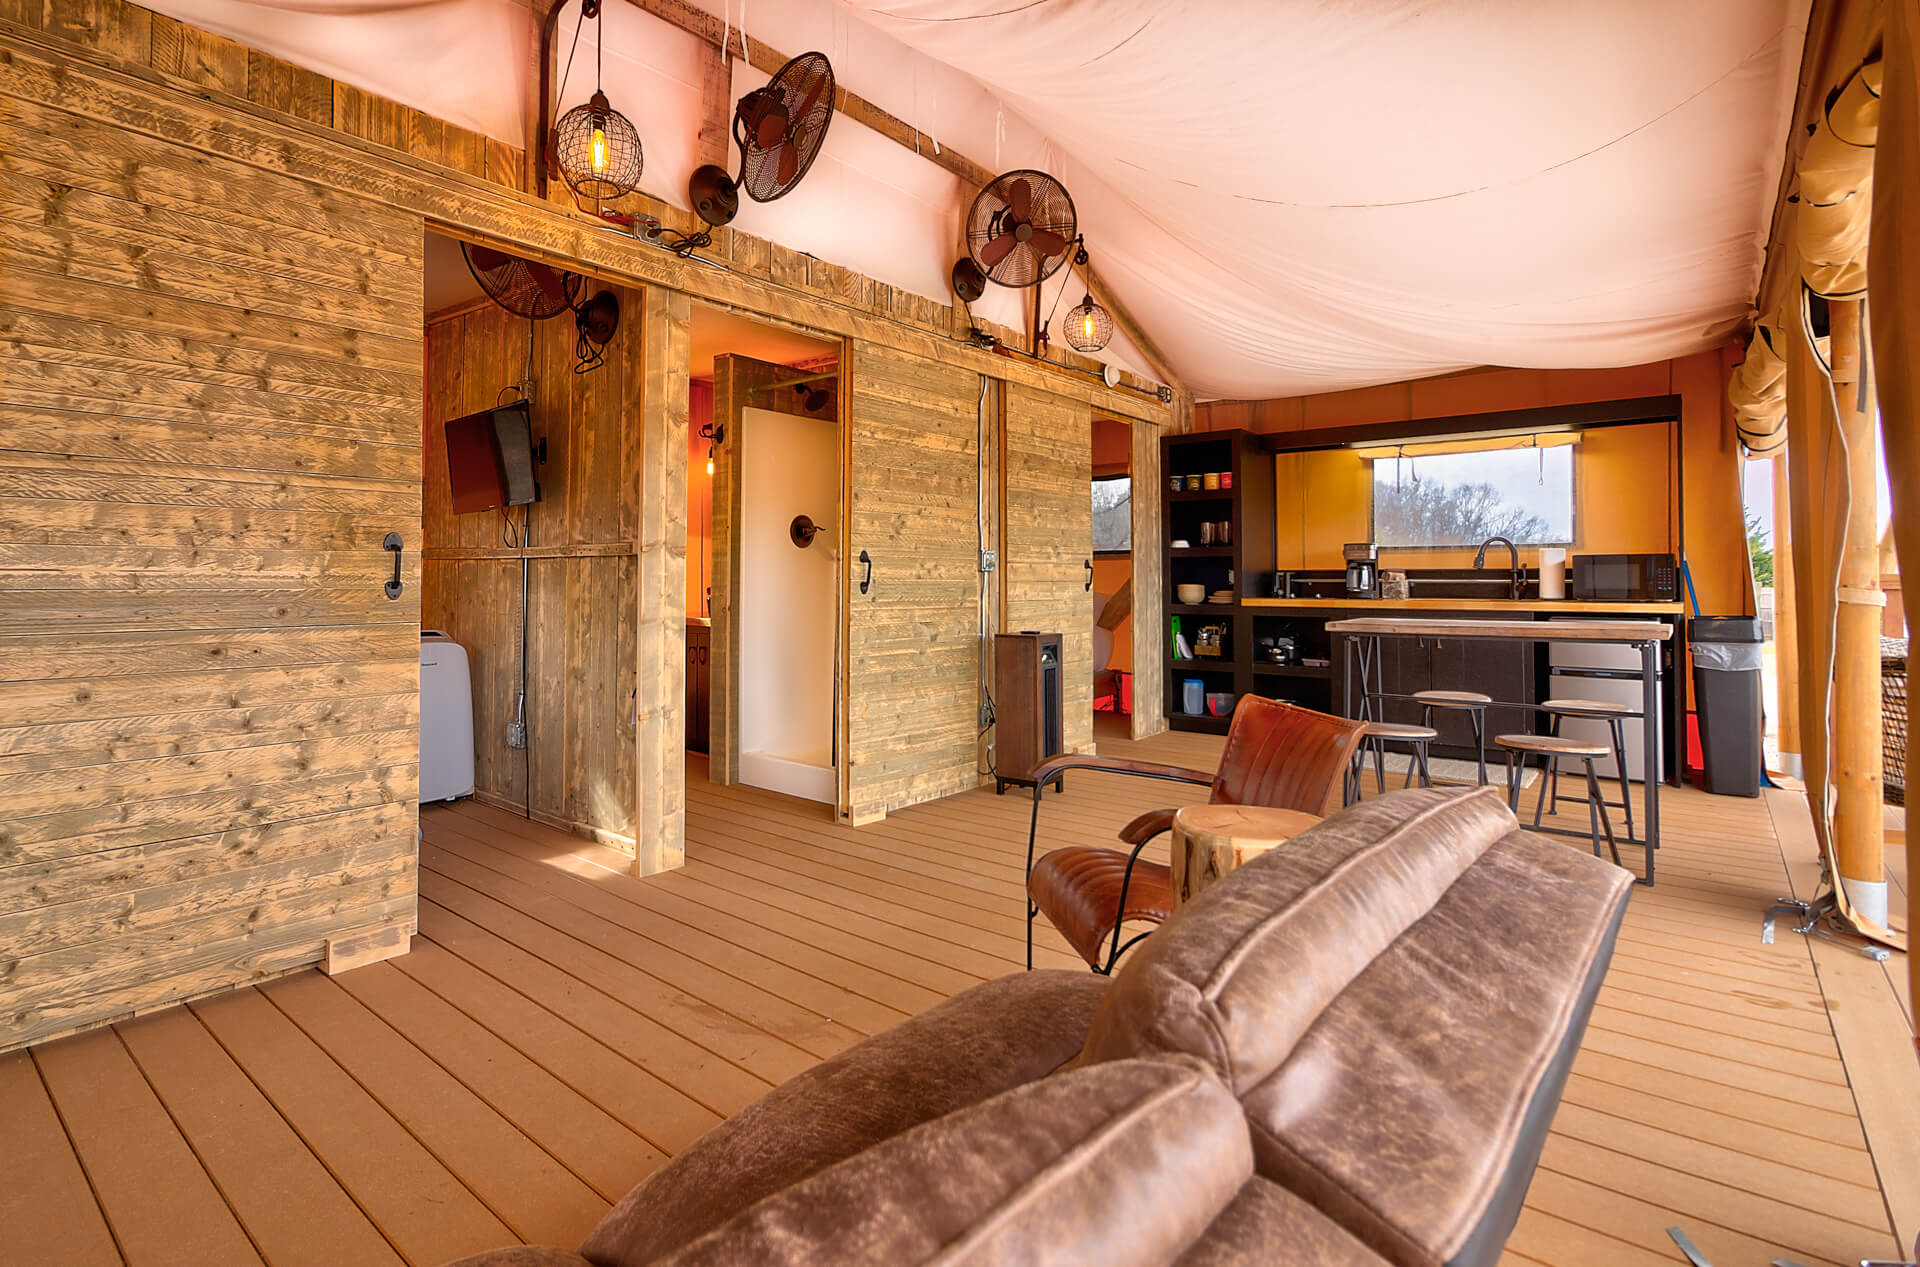 The Ridge Outdoor Resort Glamping Tents